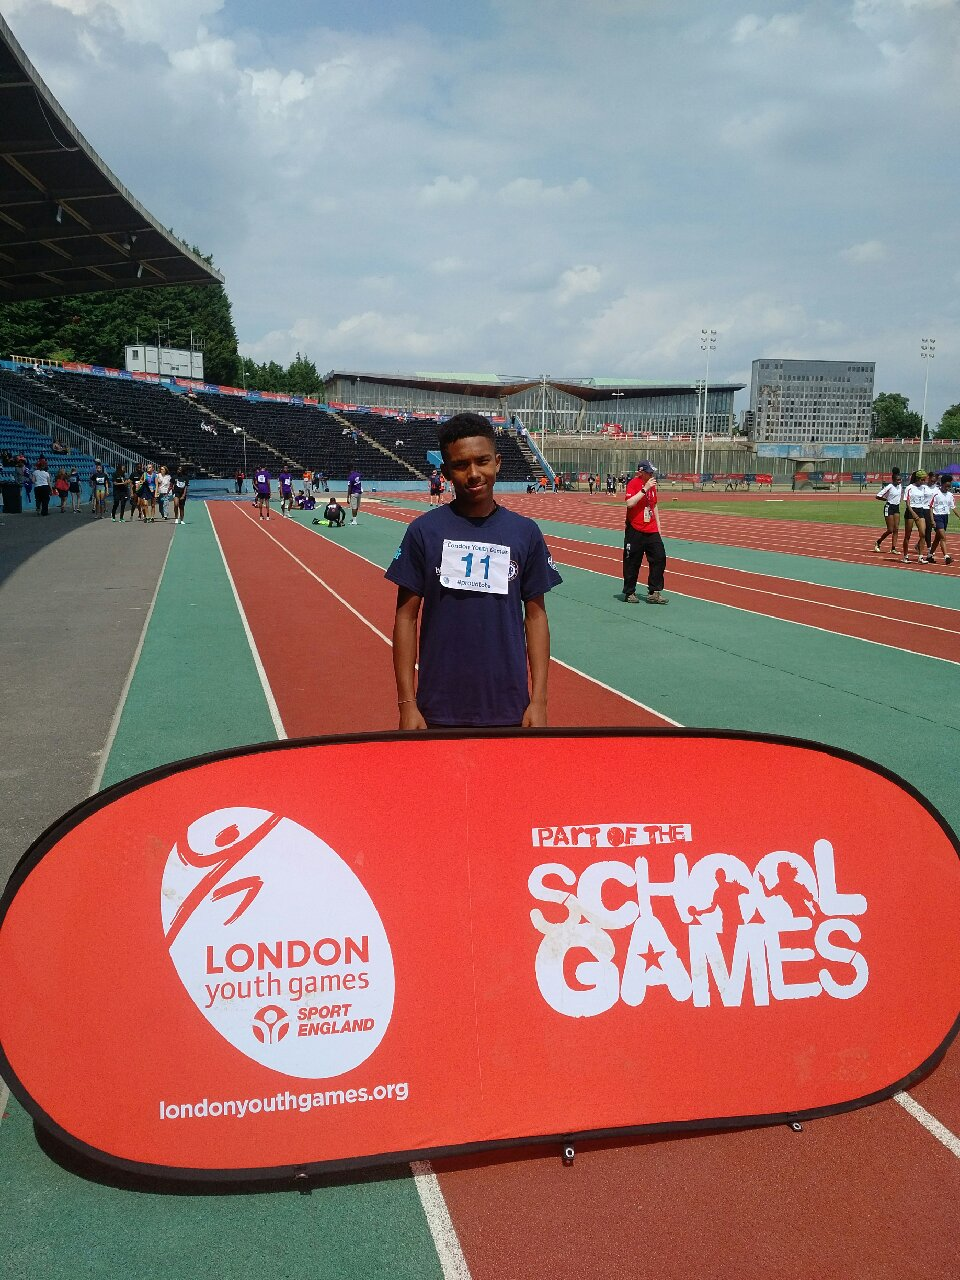 London Youth Games 1.jpg